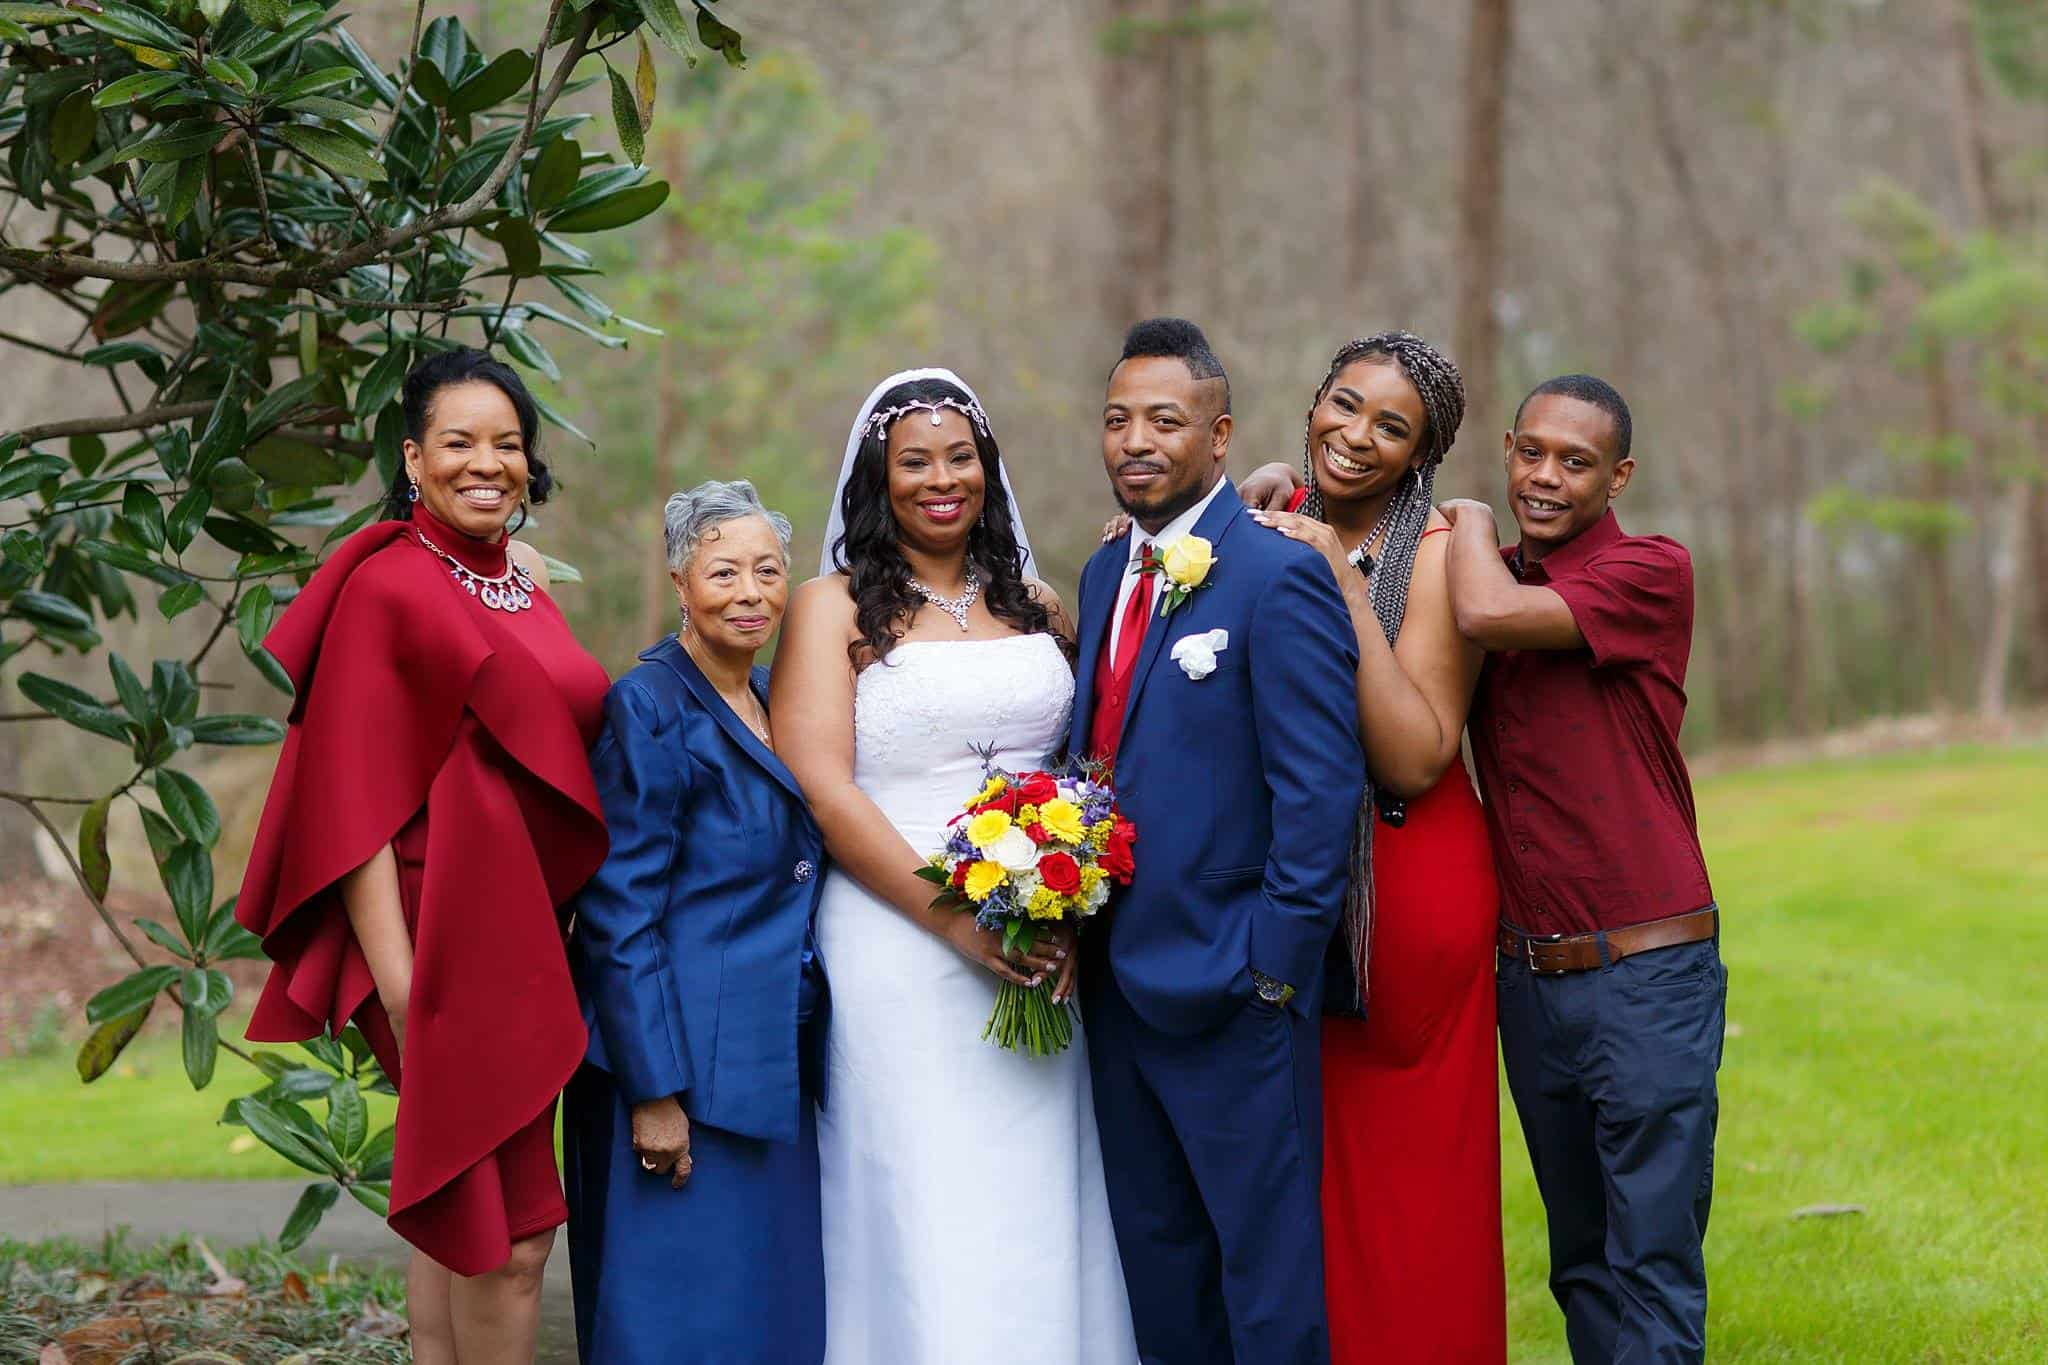 Bride with family posing outdoors with mother, maid of honor, brother, sister and son